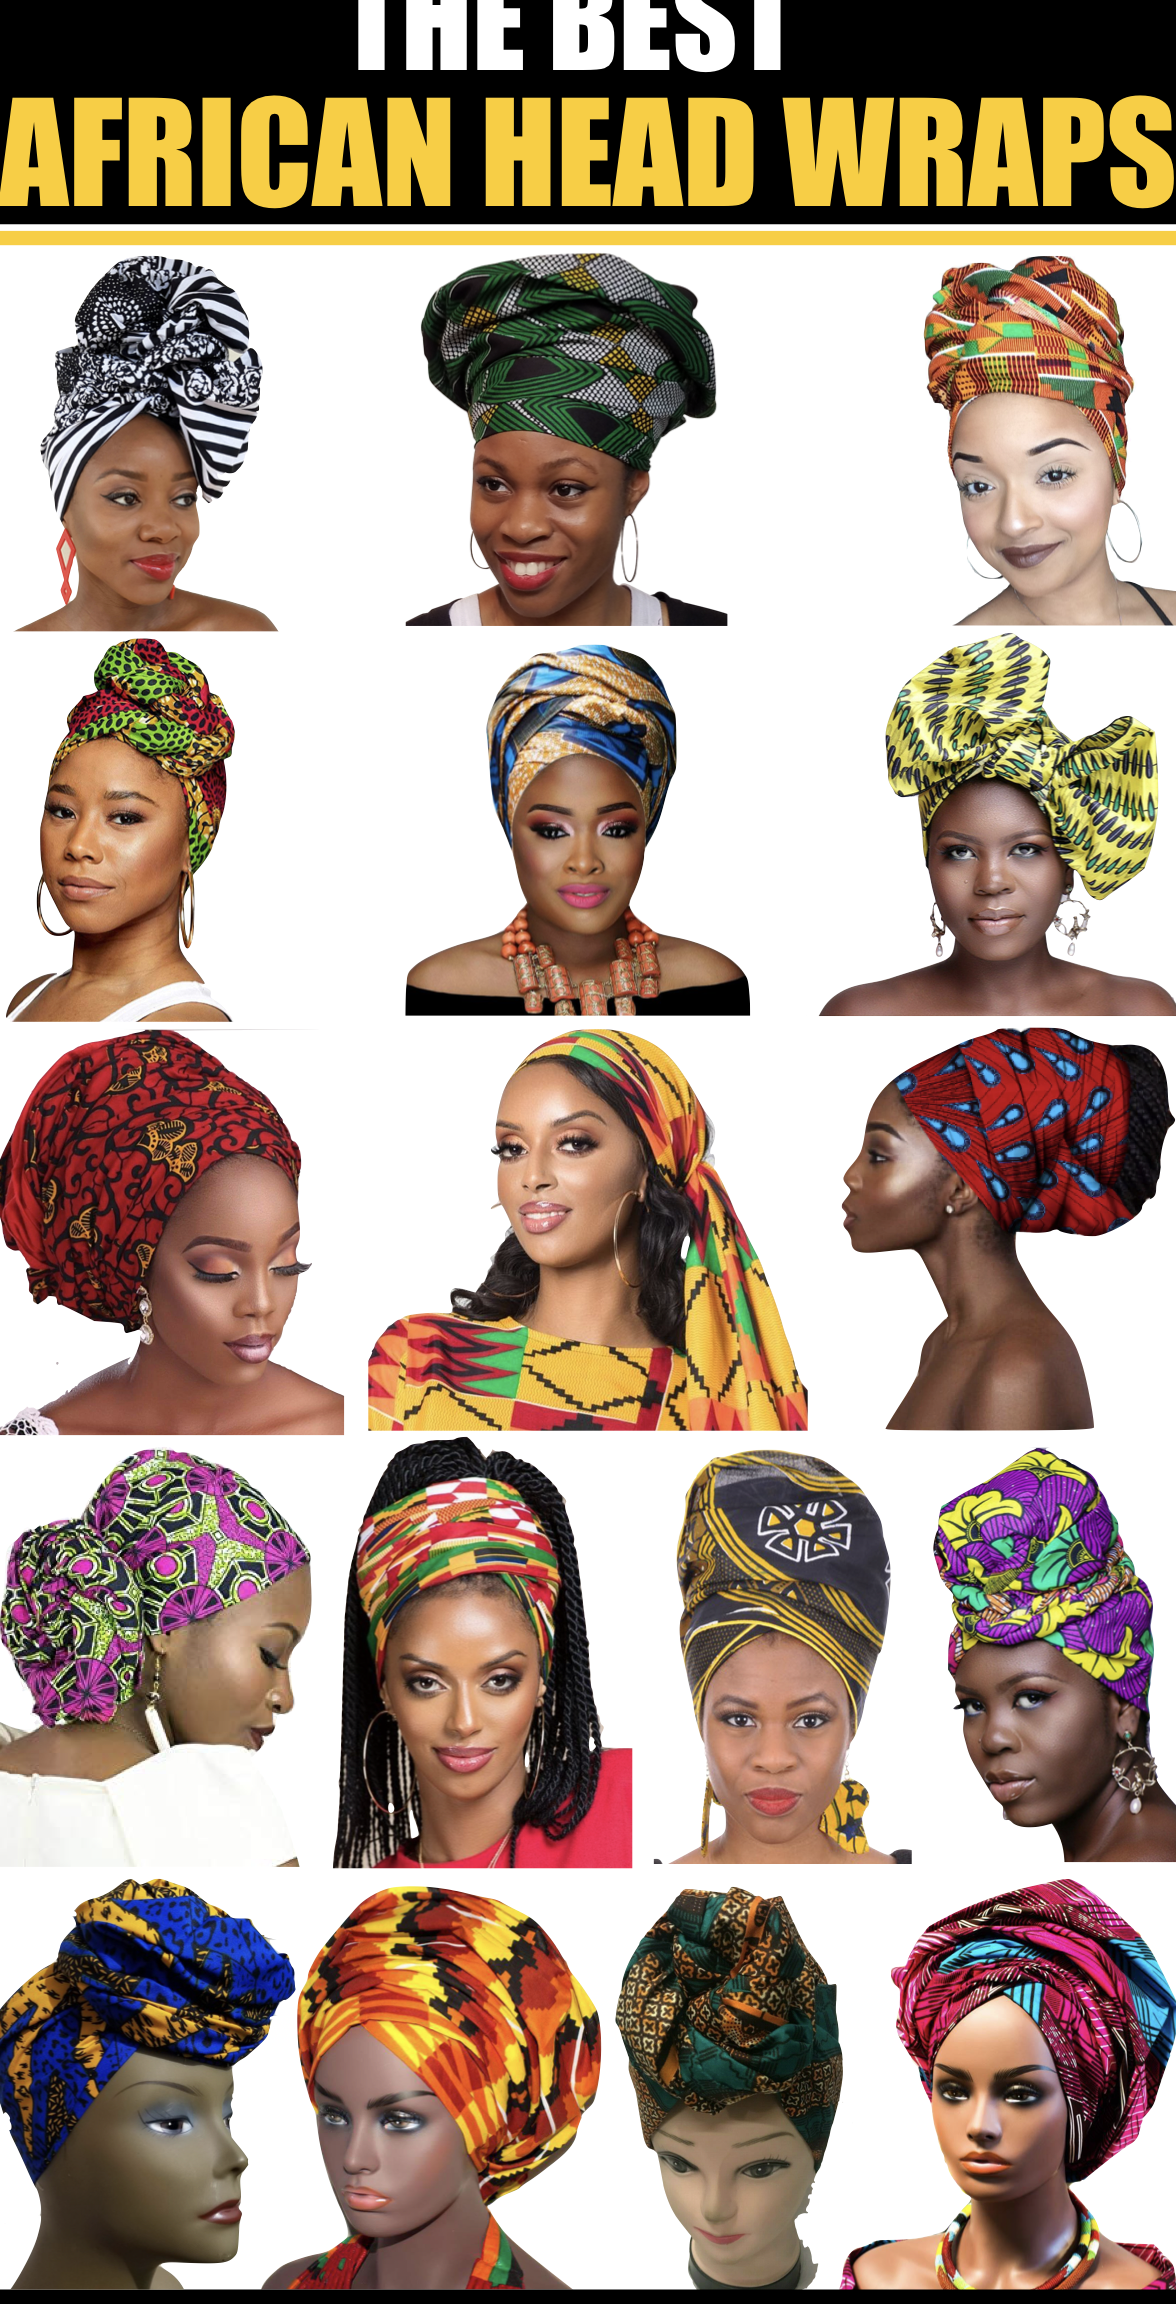 african clothing 17 Best African Head Wraps In 202